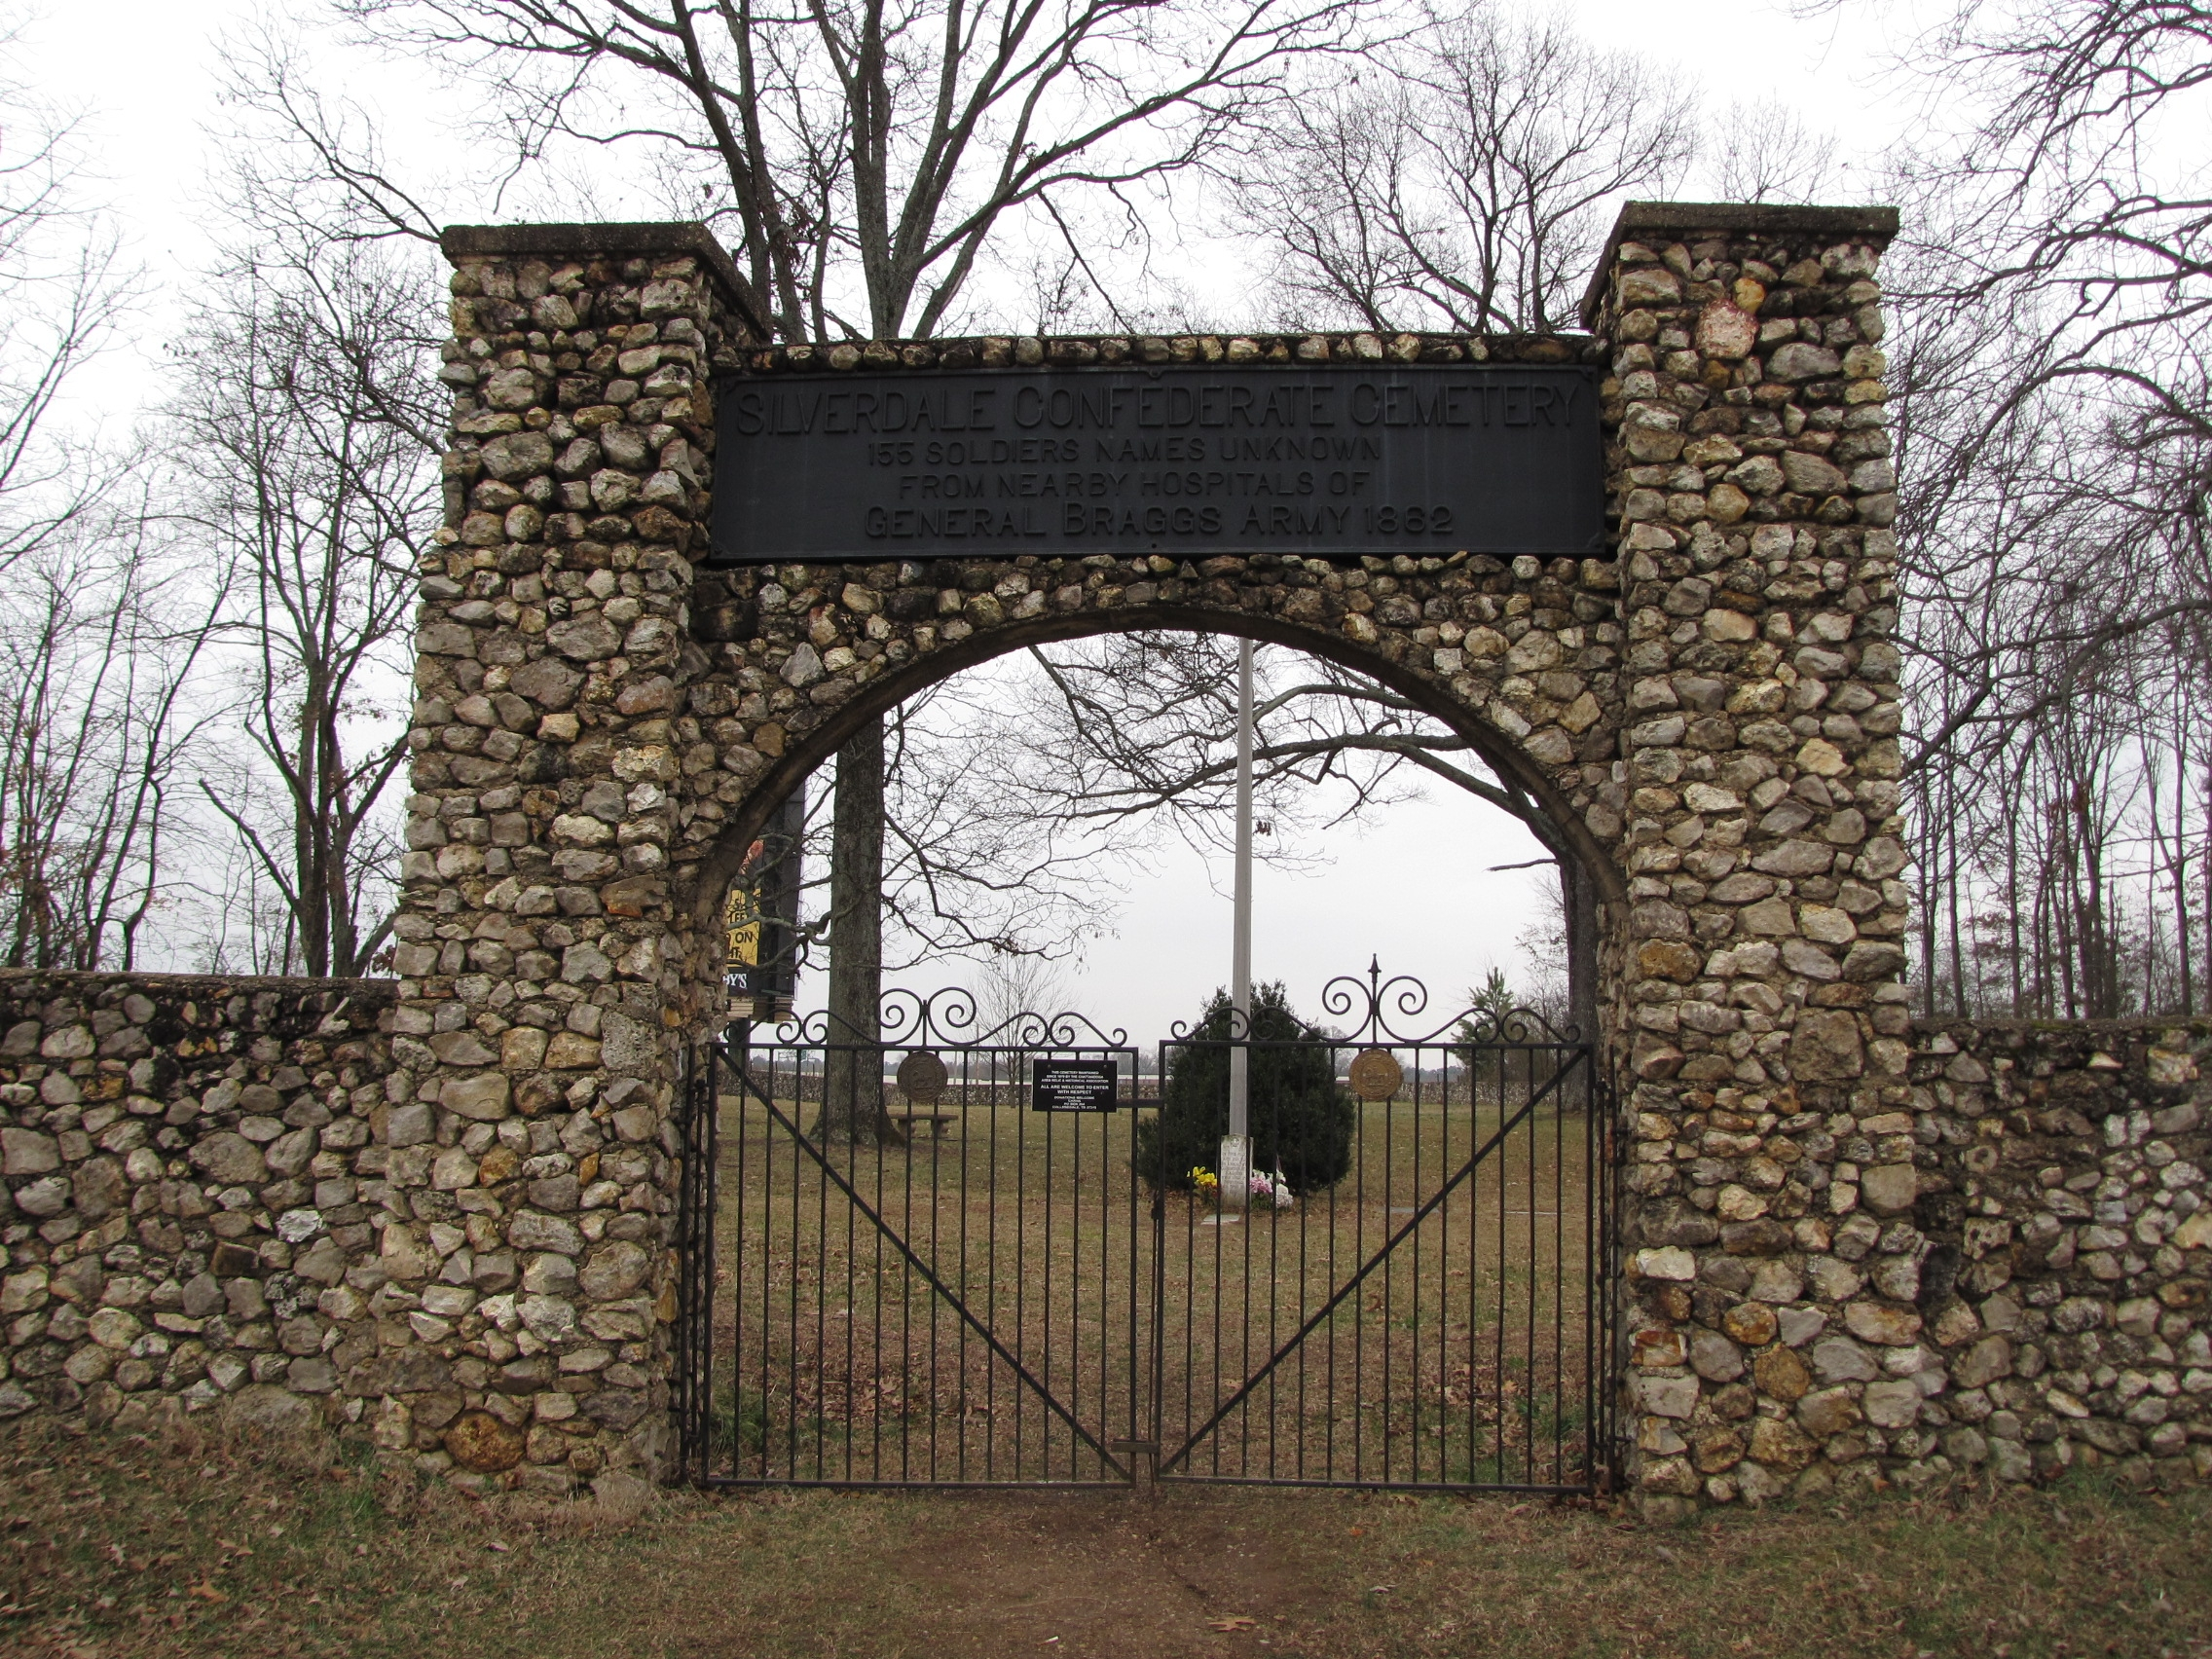 Entrance to the Cemetery. (Photo by Lee Hattabaugh)